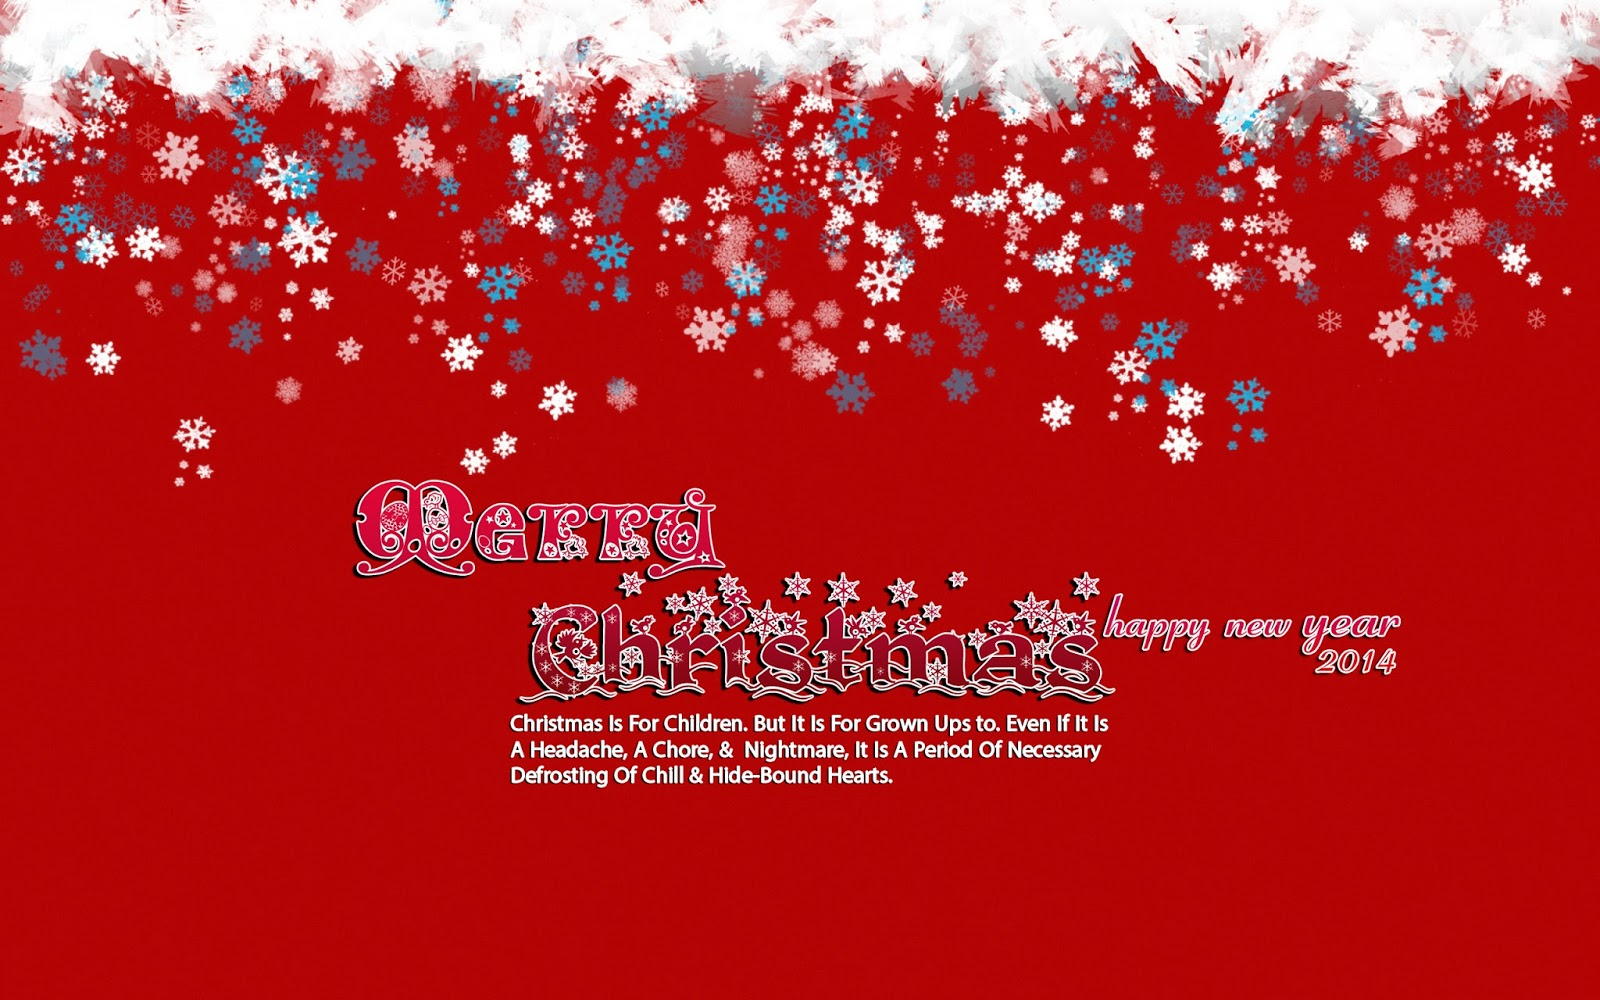 Christmas List Quotes Quotesgram: Christmas Quotes And Sayings. QuotesGram